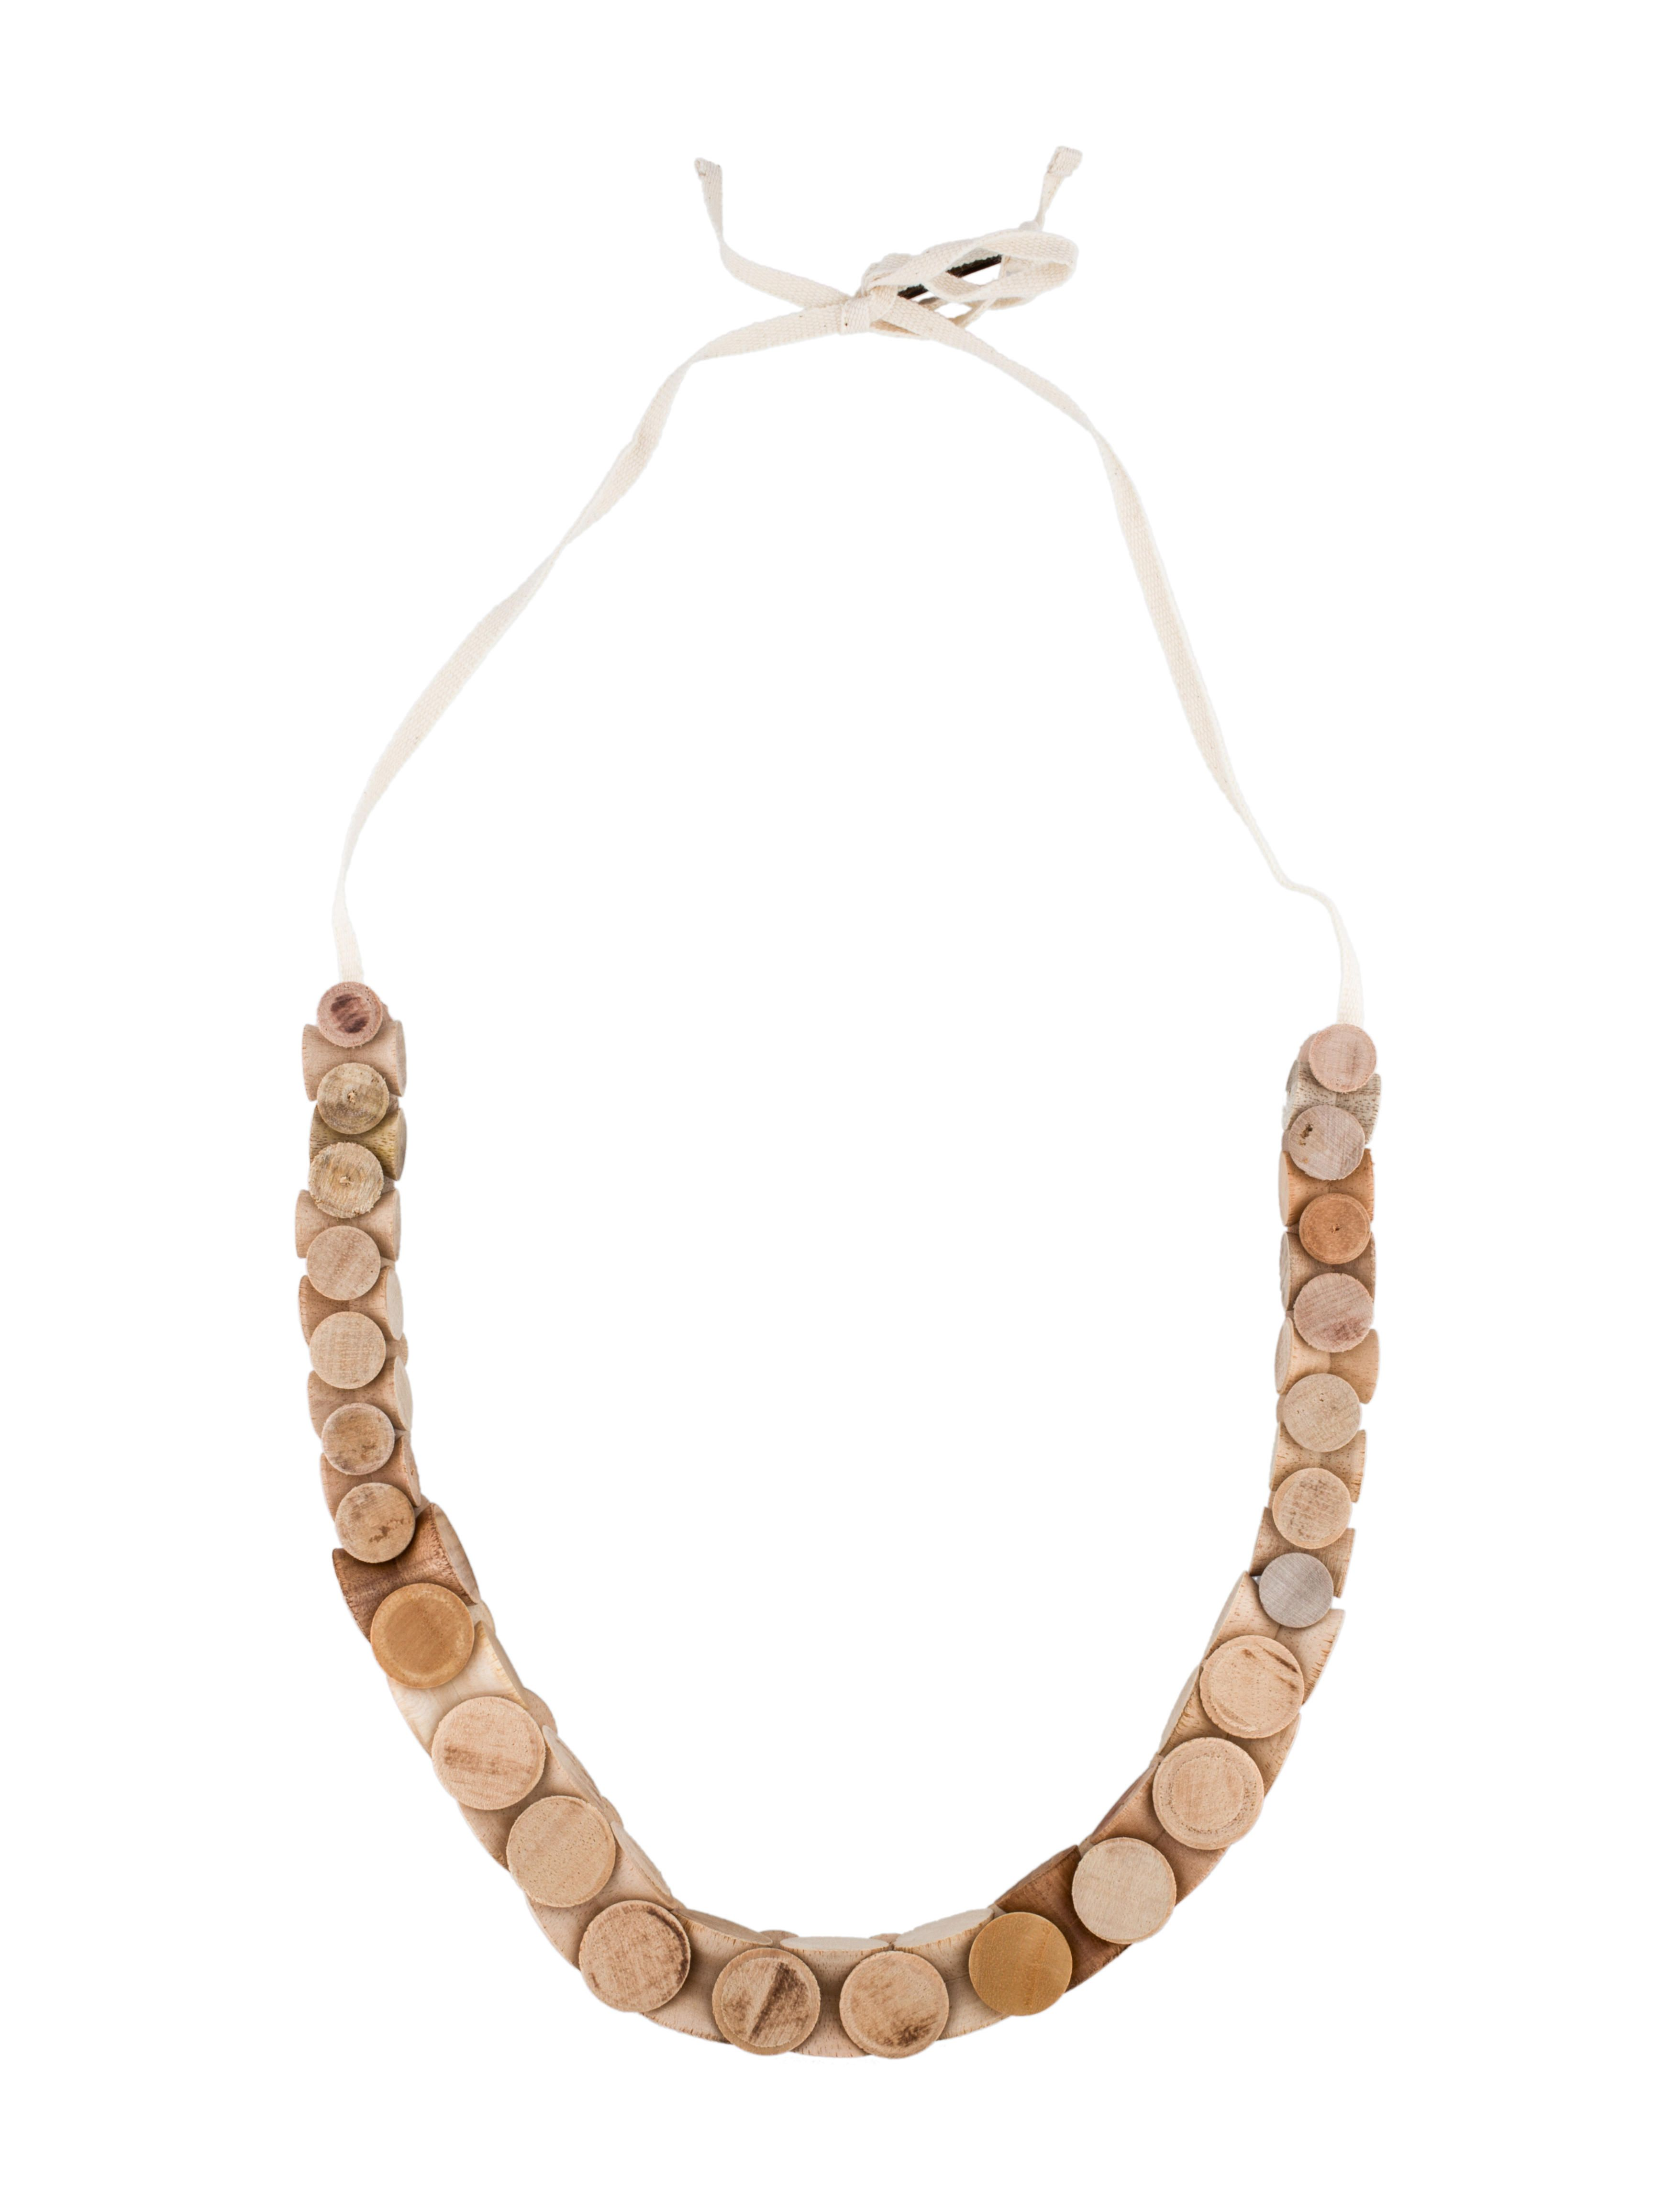 Marni Wood Necklace w/ Tags - Jewelry - MAN30022 | The RealReal